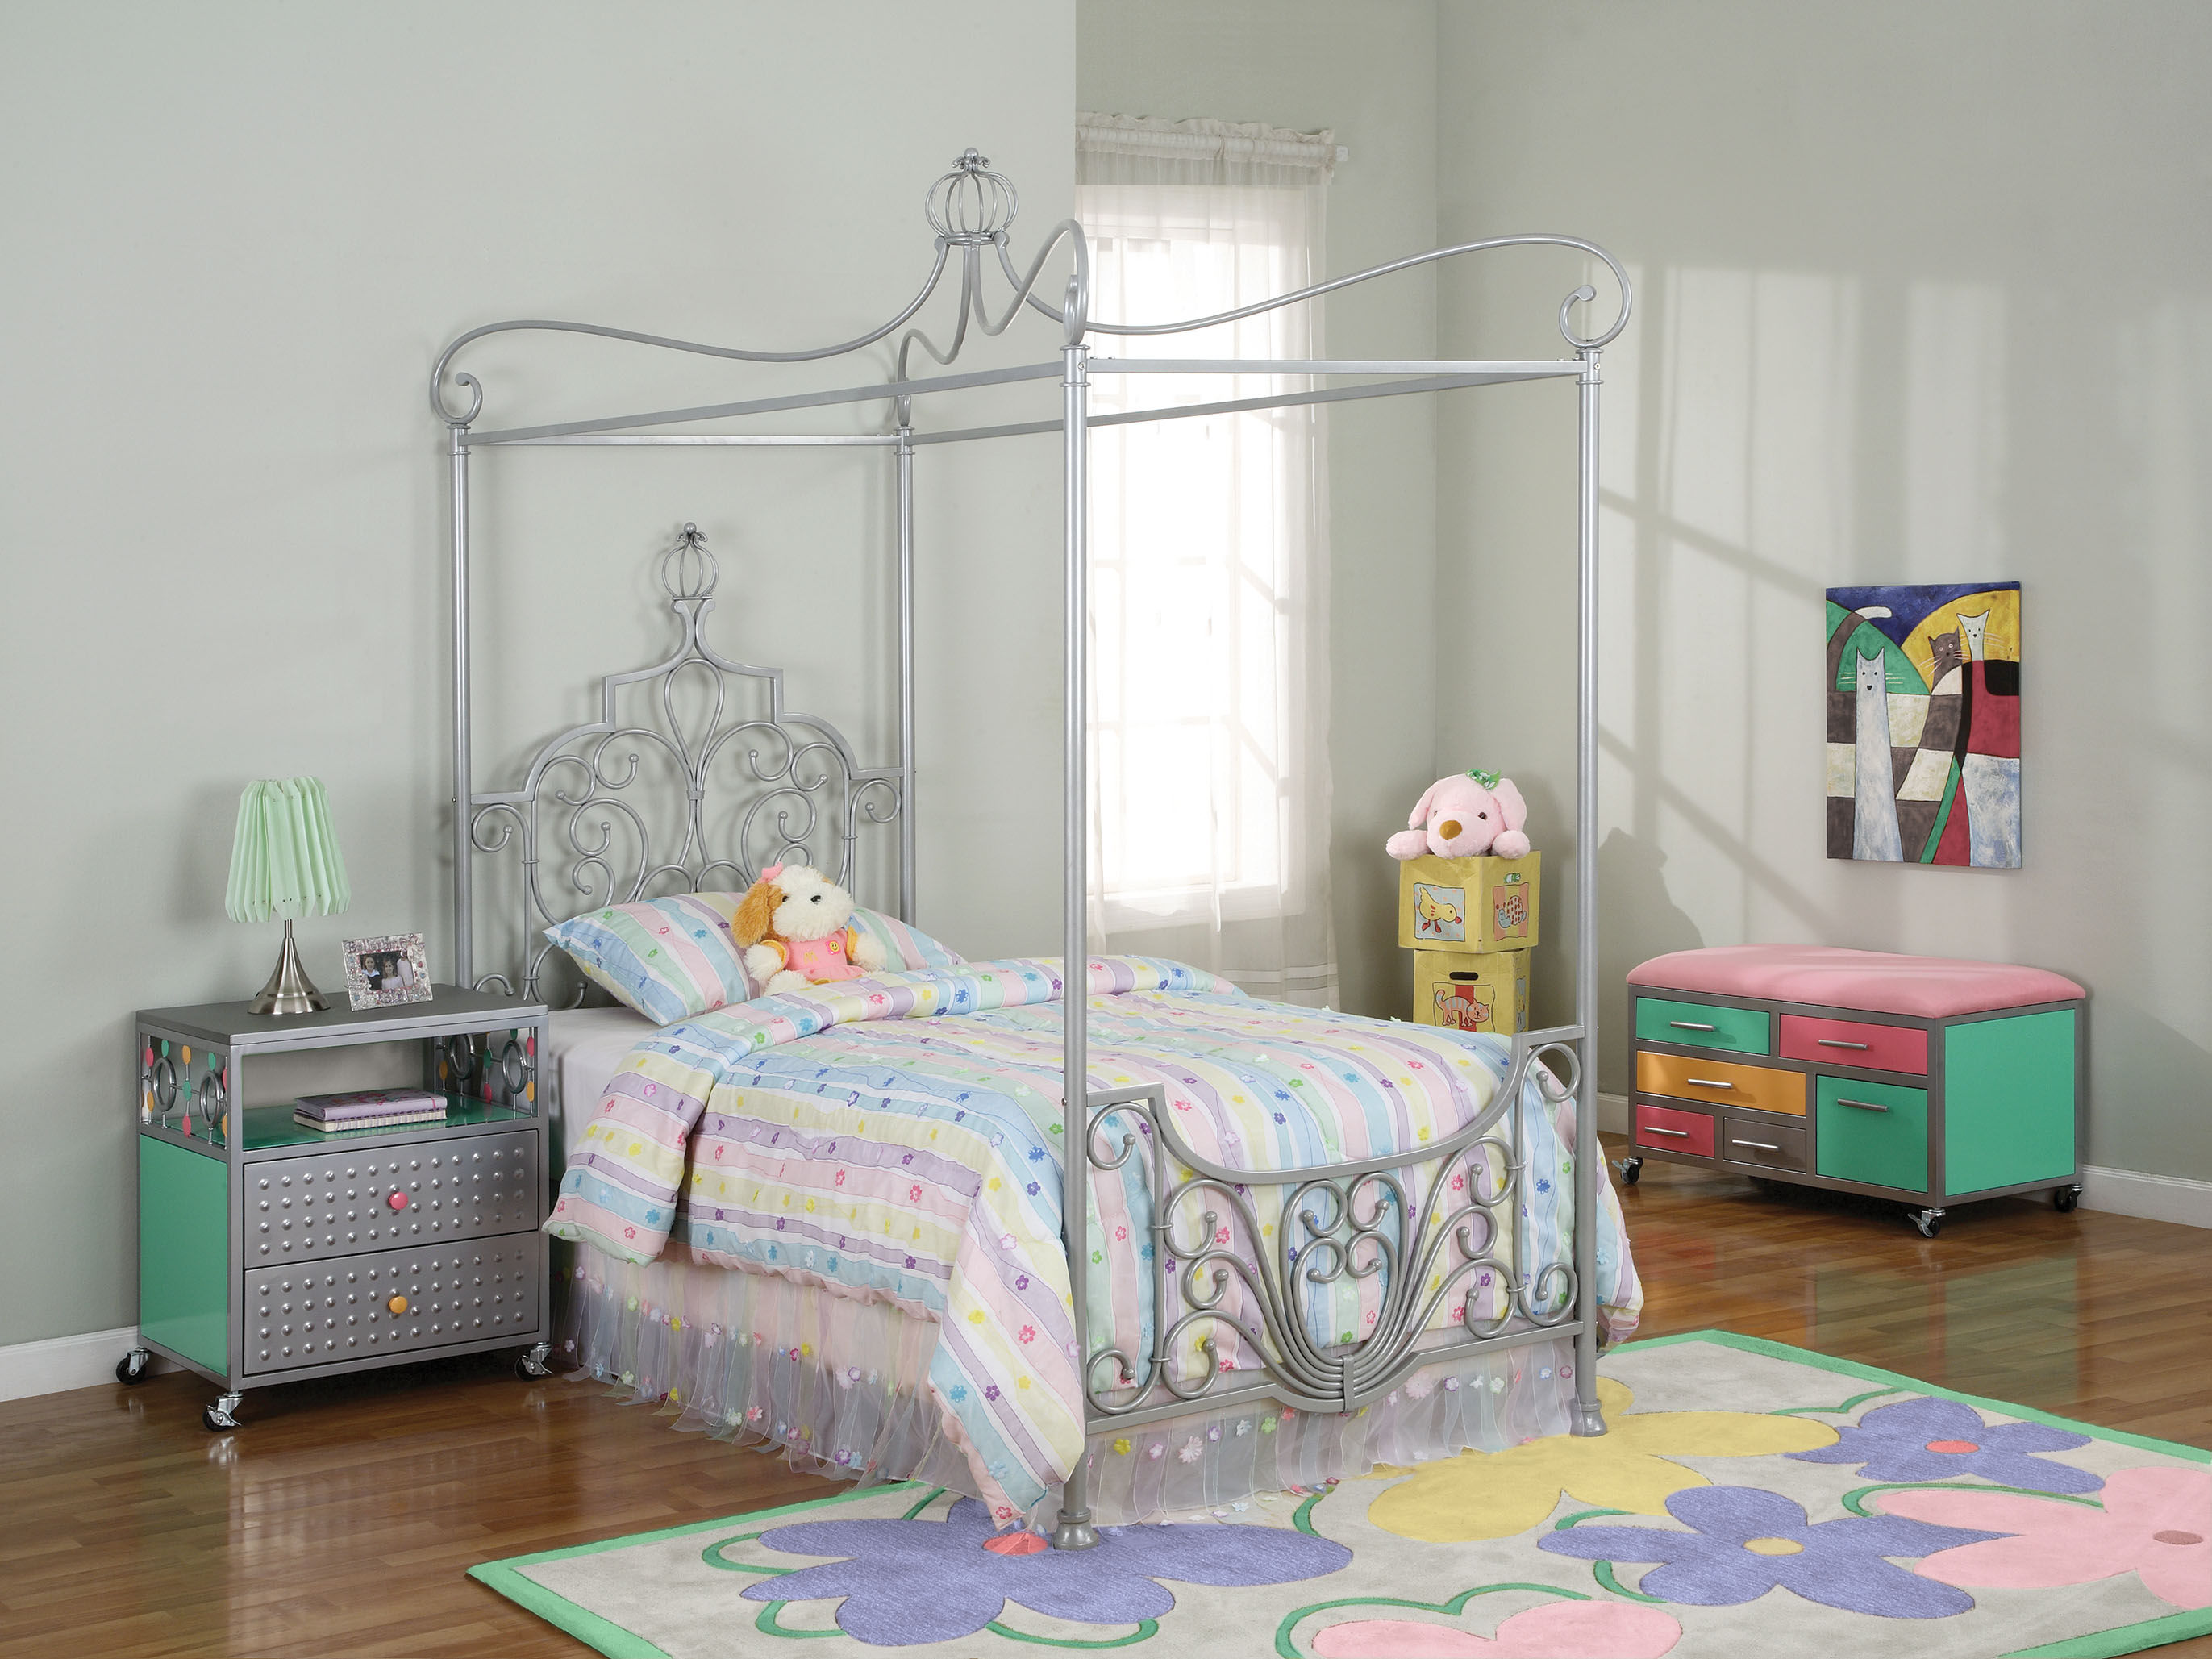 Silver Metal Canopy Bed Frame Pastel Color Cushion And Bedsheet Pastel  Color Furniture Decorative Dolls Princess